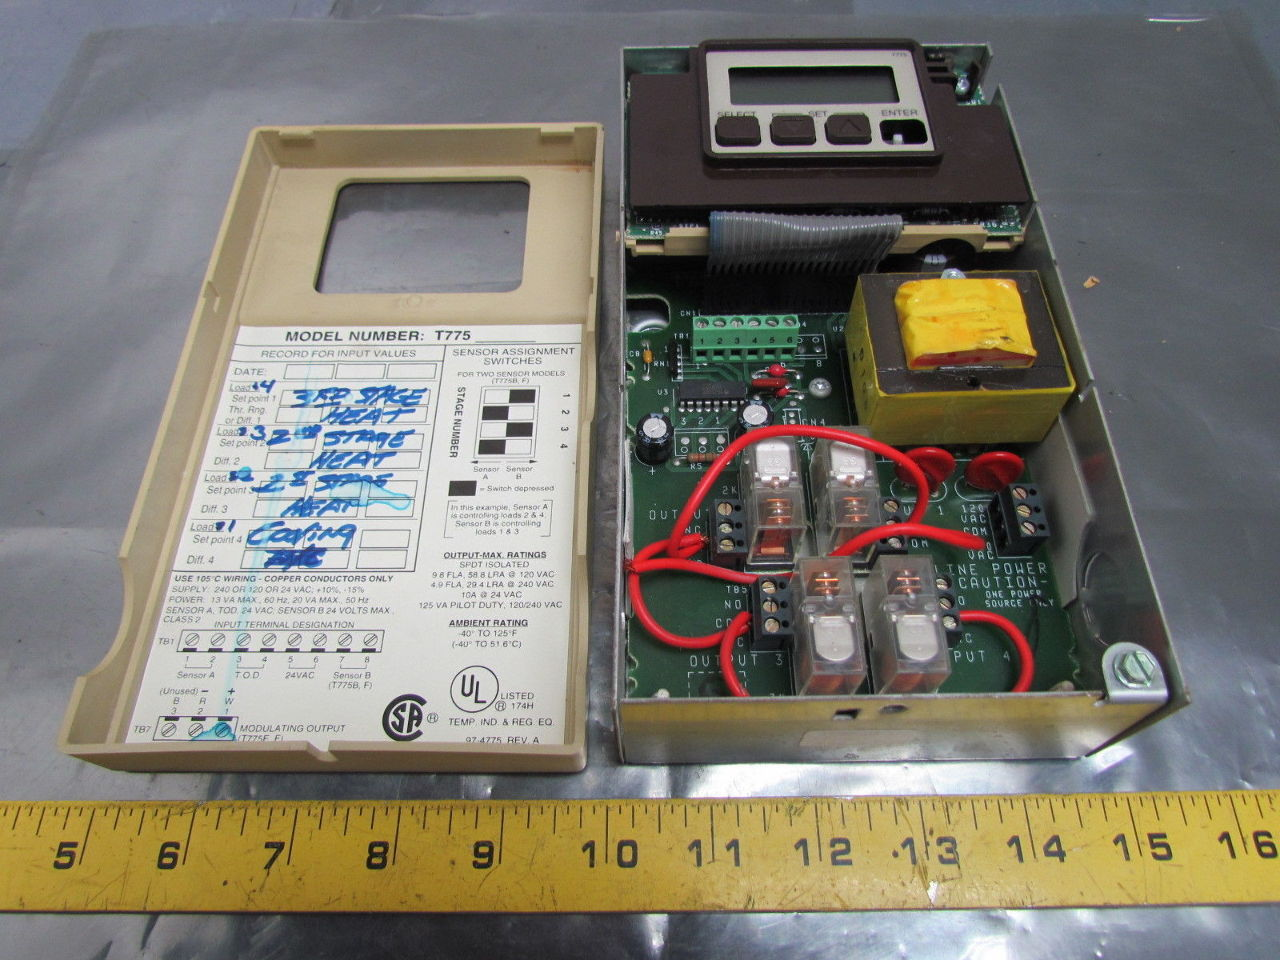 honeywell t775a1035 electronic remote temperature controller 4 spdt rh inttorg ru honeywell t775 manual operation honeywell t775 series 2000 manual